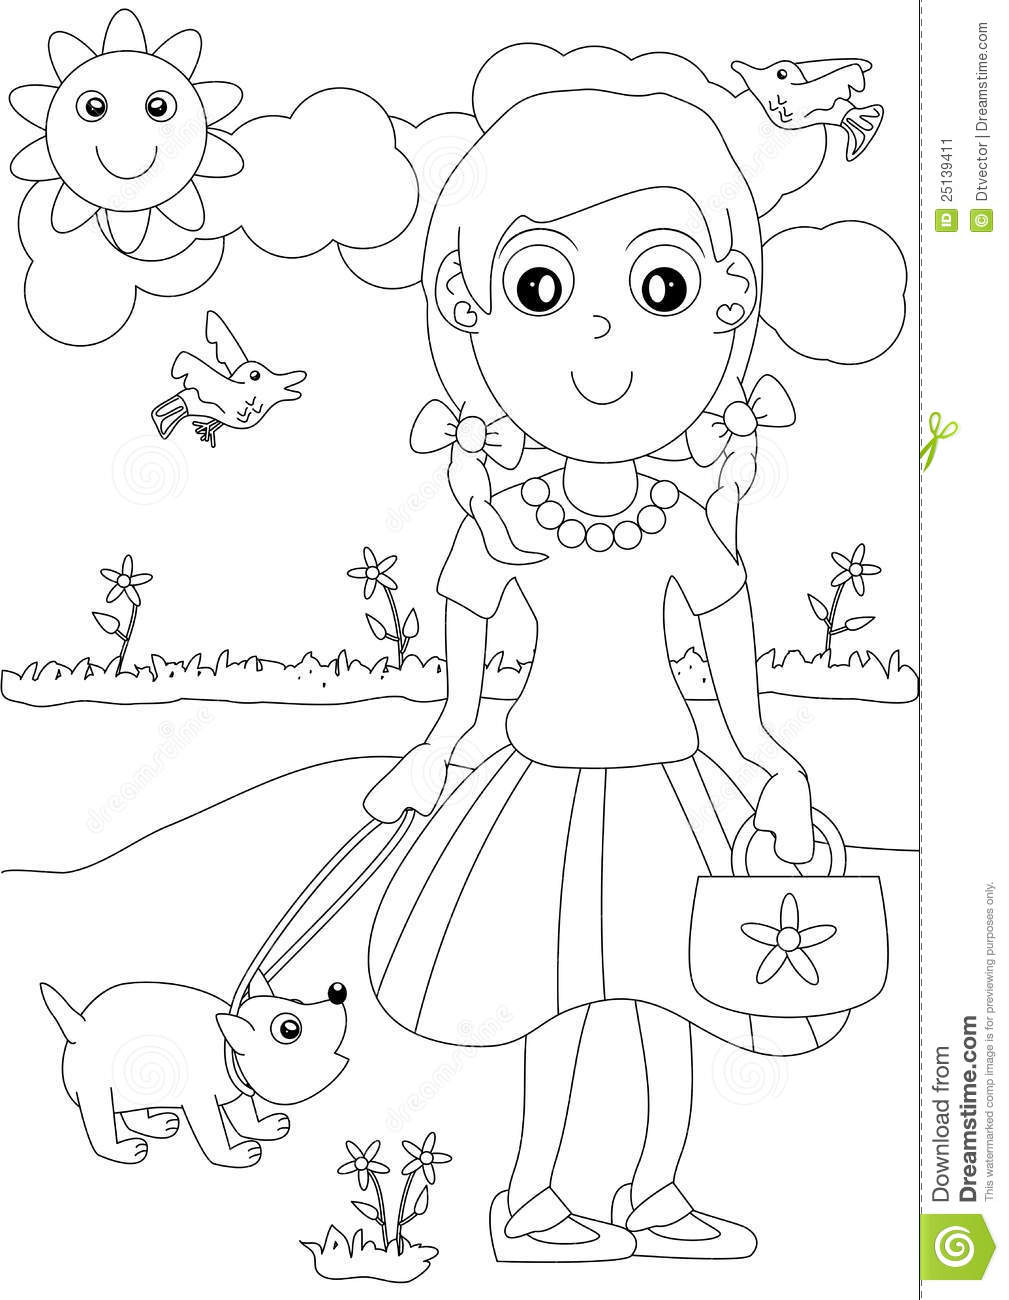 Coloring Girl And Dog Outdoor_eps Stock Vector - Illustration of ...